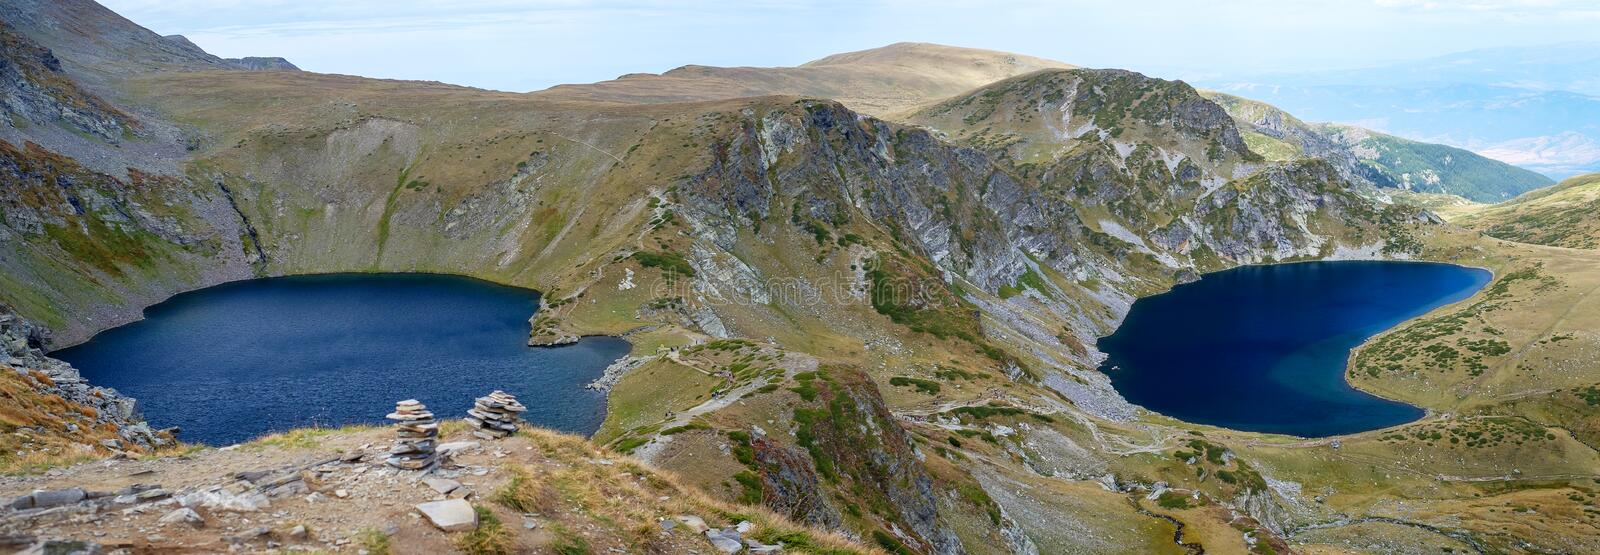 Two mountains lakes panorama royalty free stock photography